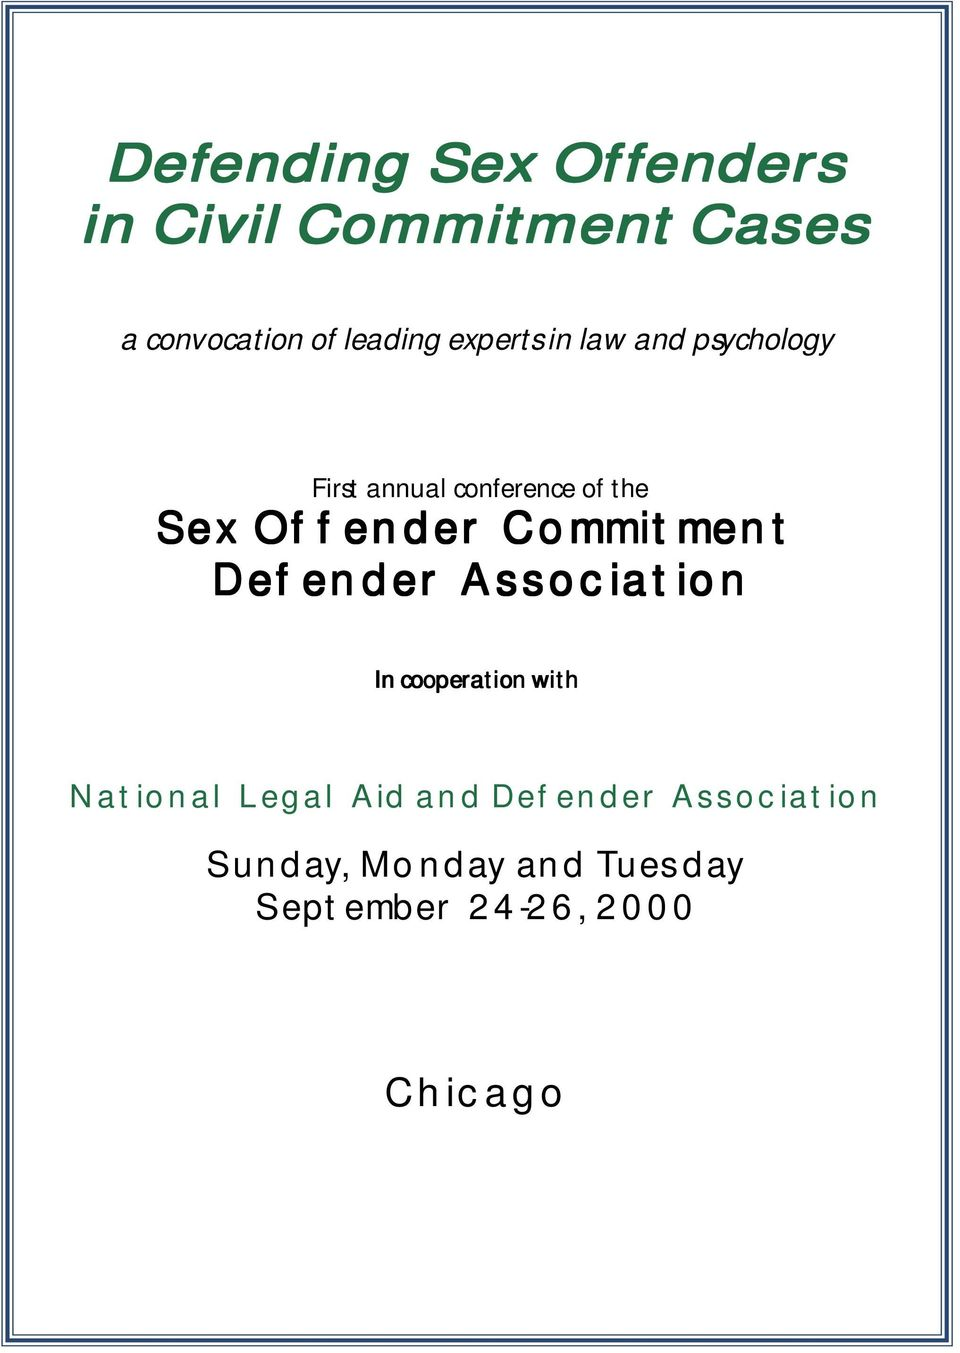 Civil commitment of sex offenders cases